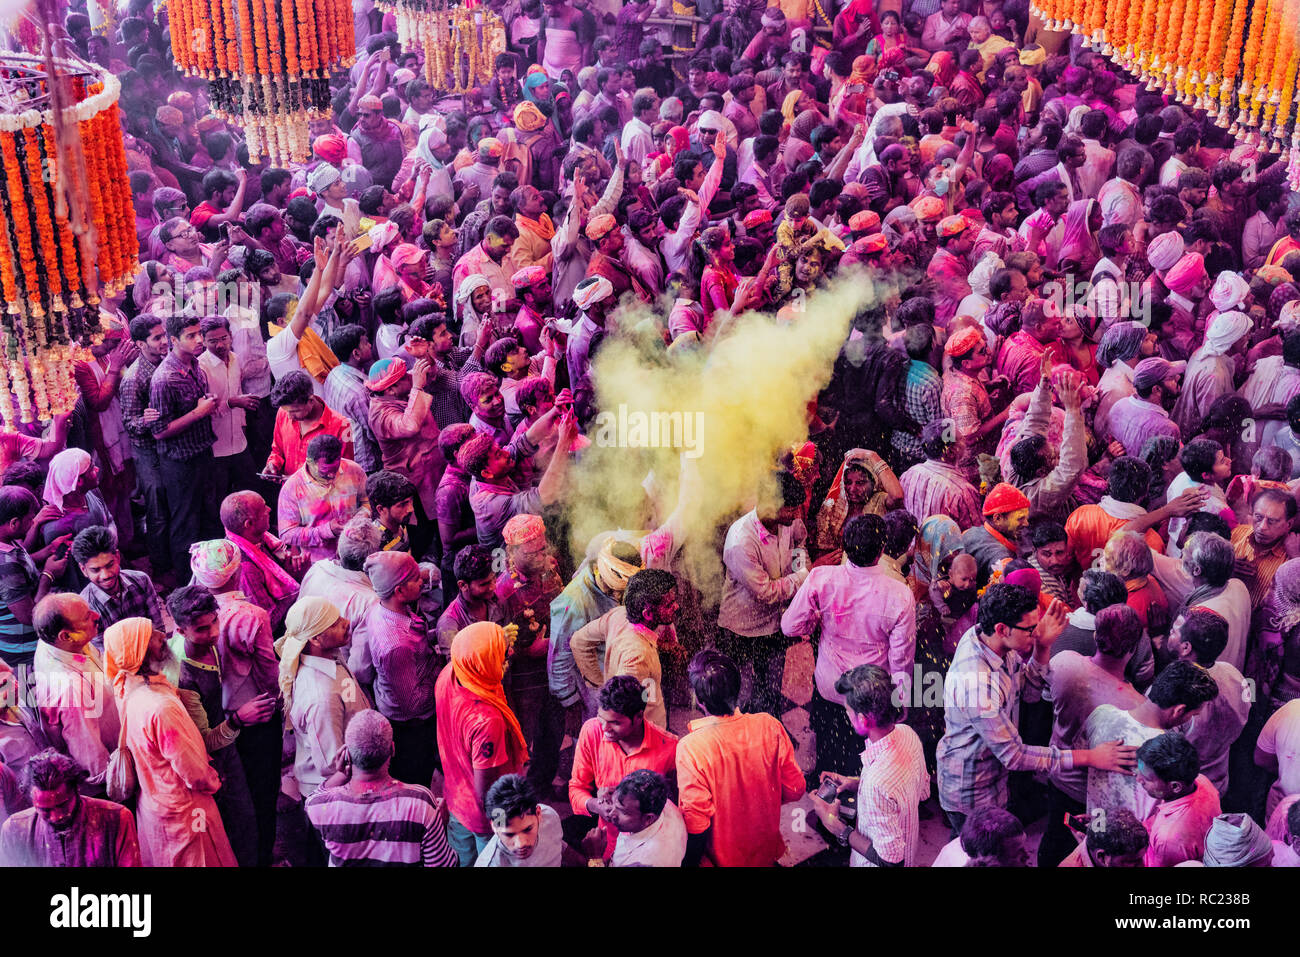 Barsana, India / February 23, 2018 - Crowds pack tightly togerher as paint is thrown over their heads during Holi festival - Stock Image